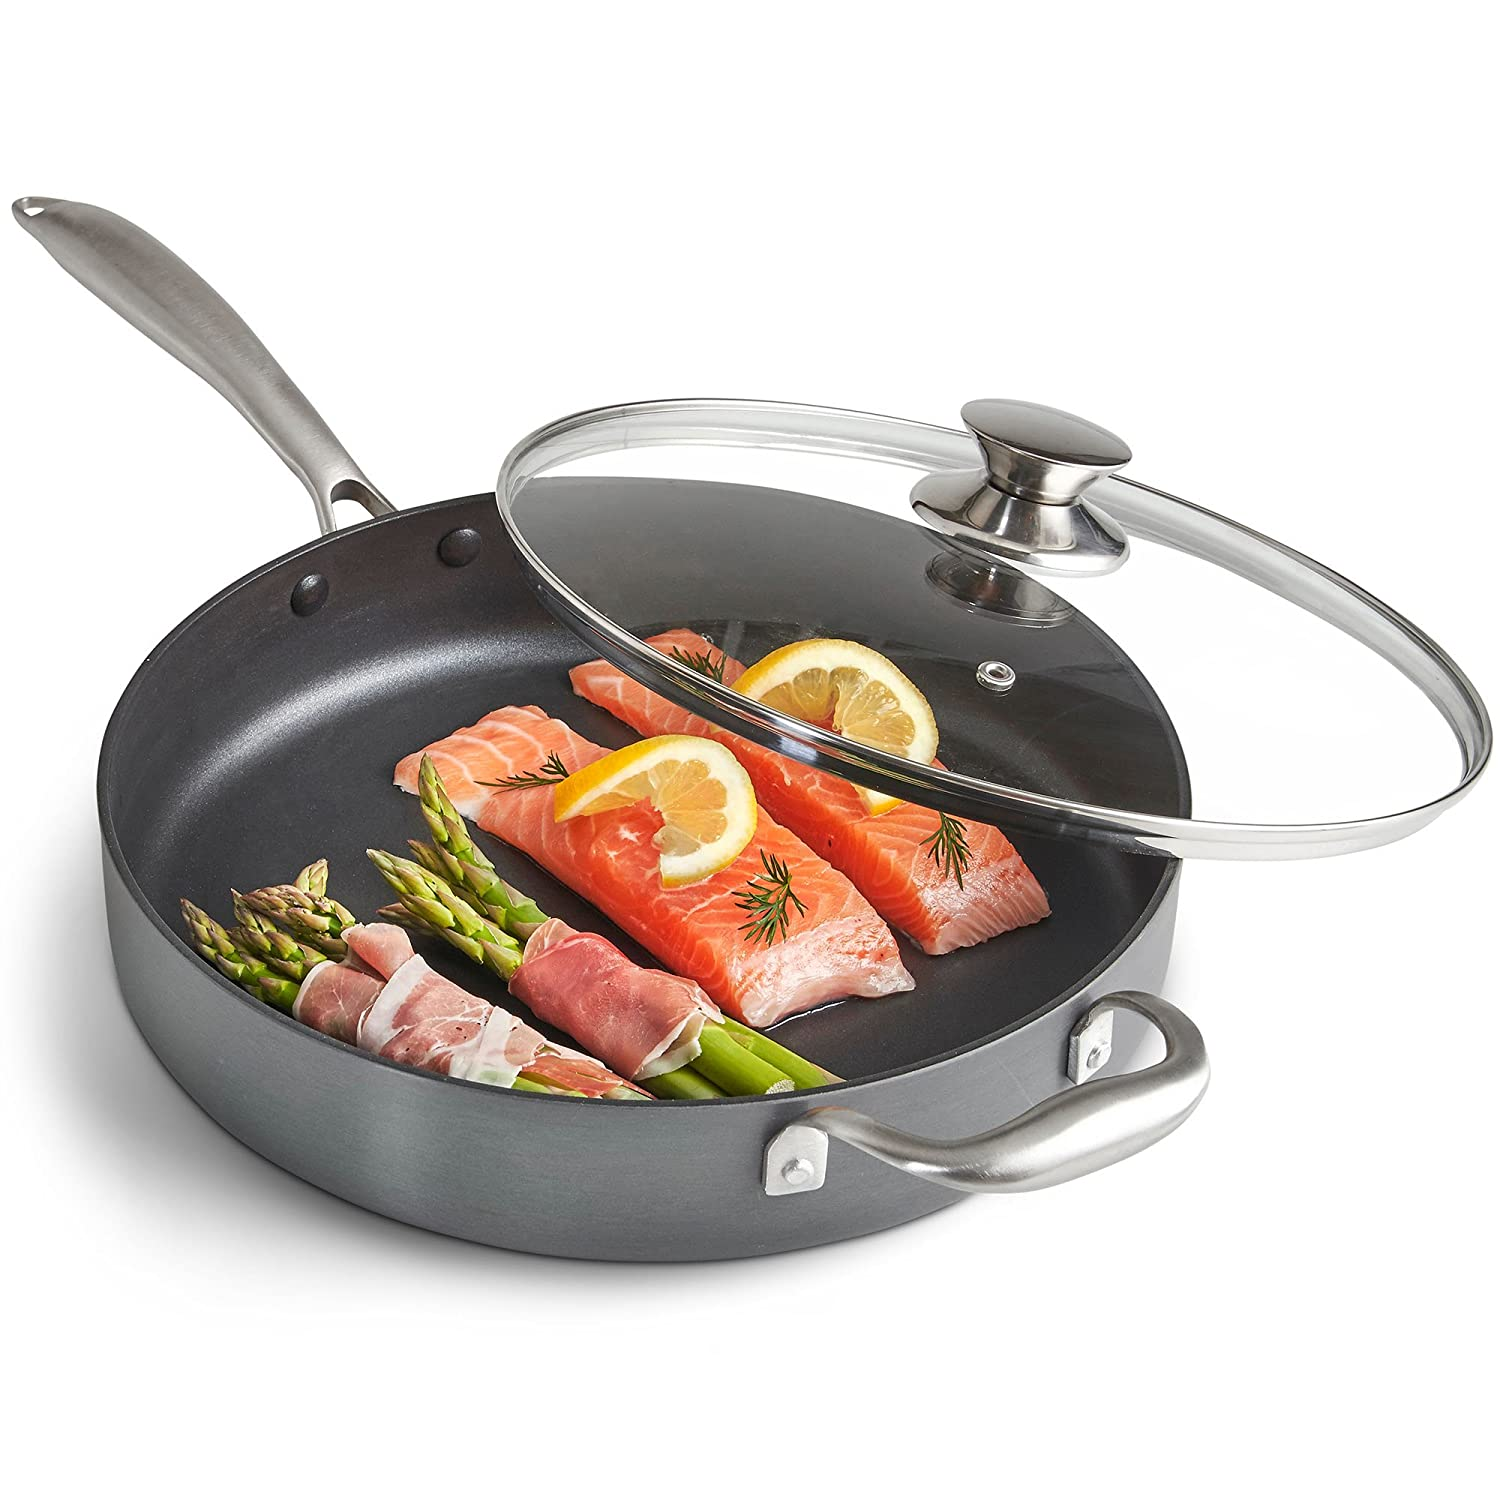 """VonShef 11"""" Premium Hard Anodized Aluminum Sauté Pan with Non Stick Interior Helper Handle and Tempered Glass Lid, Large, 11 Inches With Nonstick Interior, 3.1 Quart Capacity, Gray"""